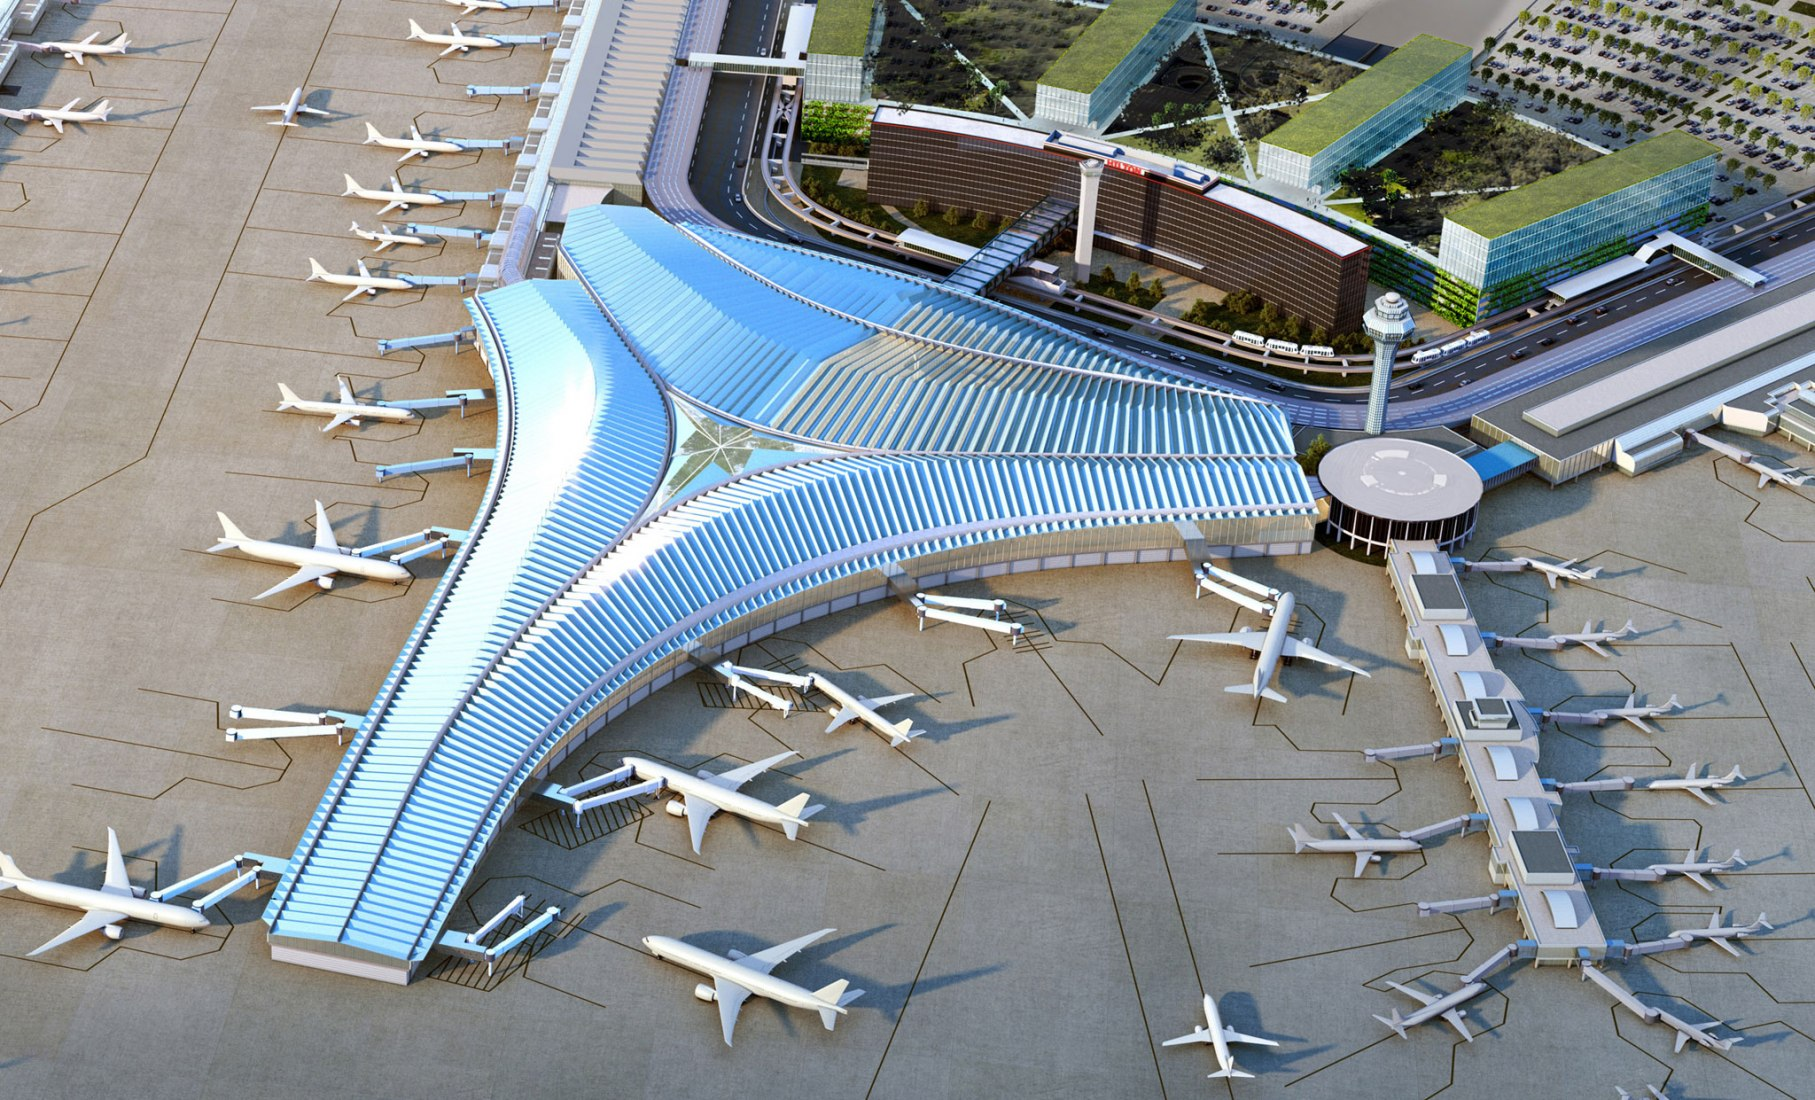 Modeling. Chicago O'Hare Airport Expansion by Studio Gang.